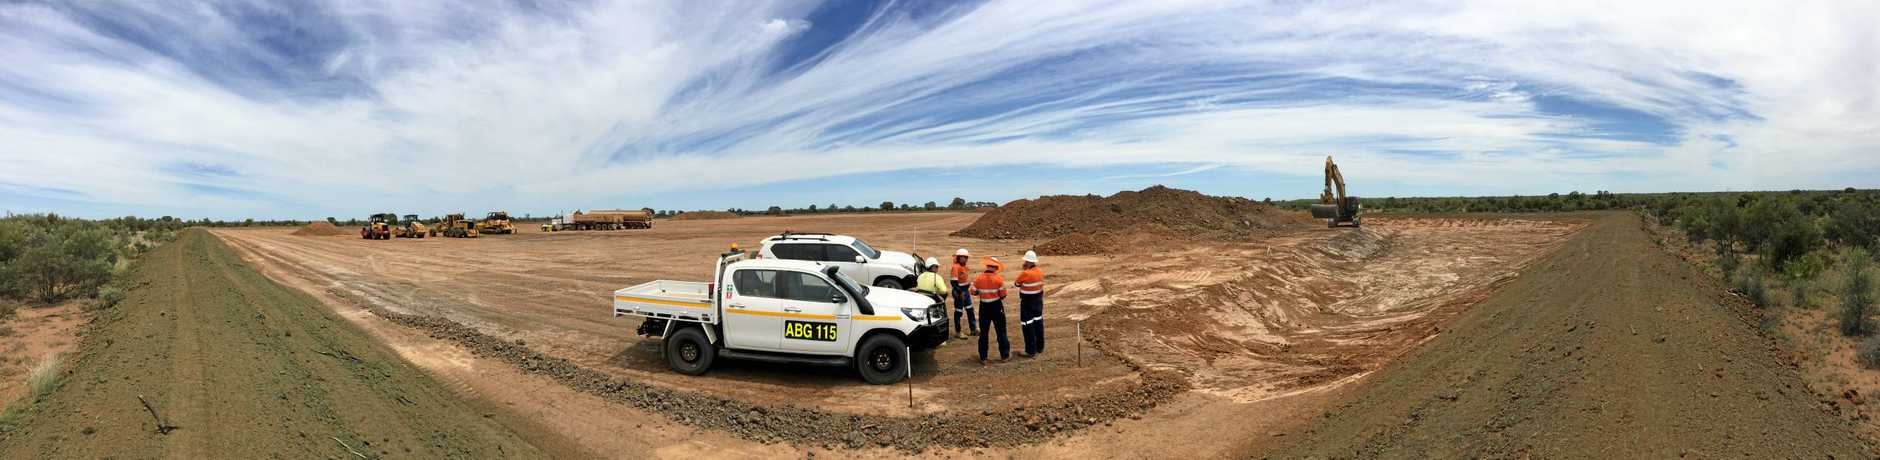 Temporary Rail Camp Construction - Adani and contractor personnel overseeing the earthworks of the Temporary Camp hardstand including sediment basin excavation